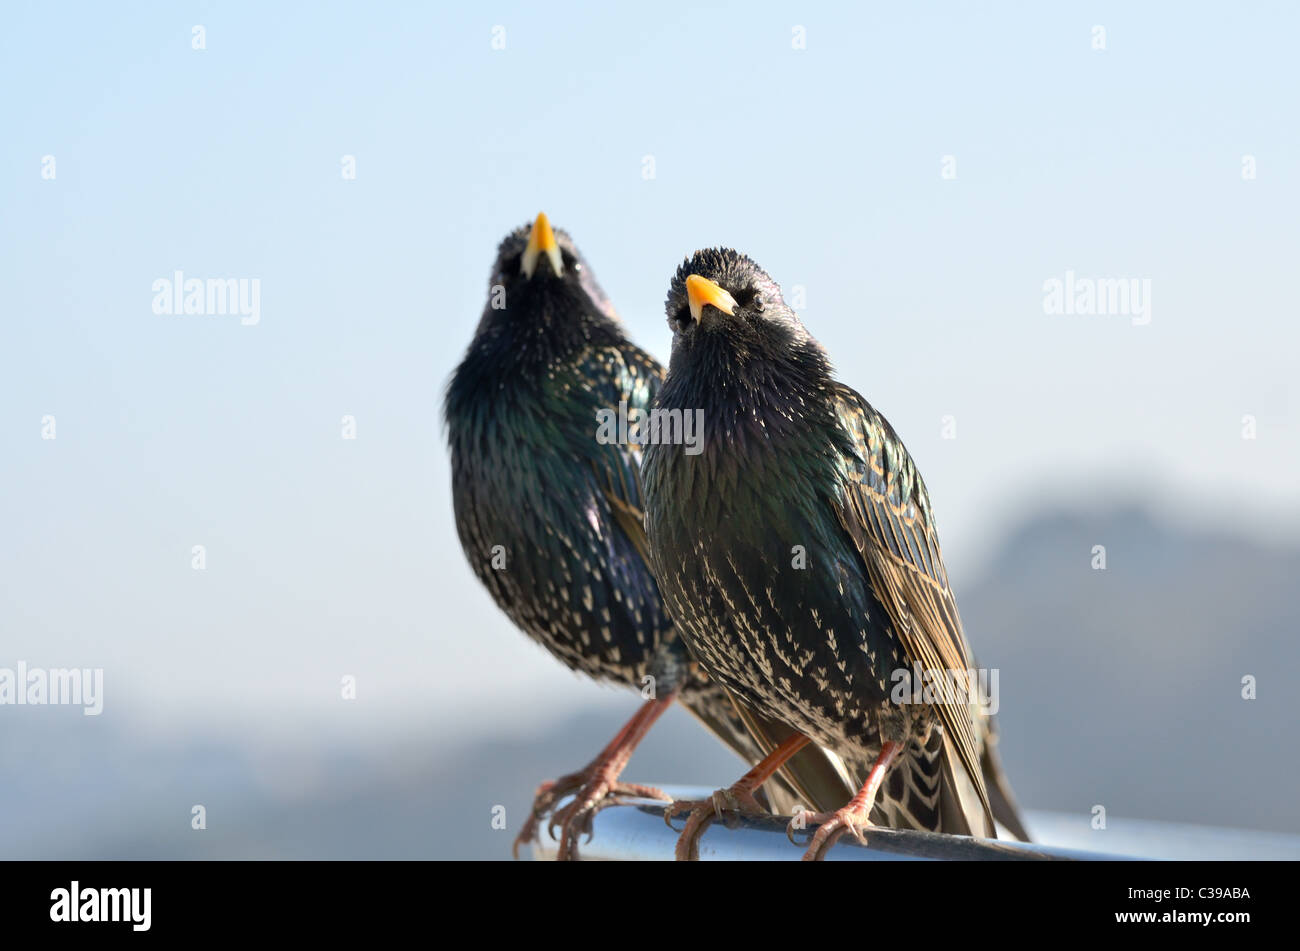 A pair of Starlings sitting on a Chrome rail in the afternoon sun Stock Photo